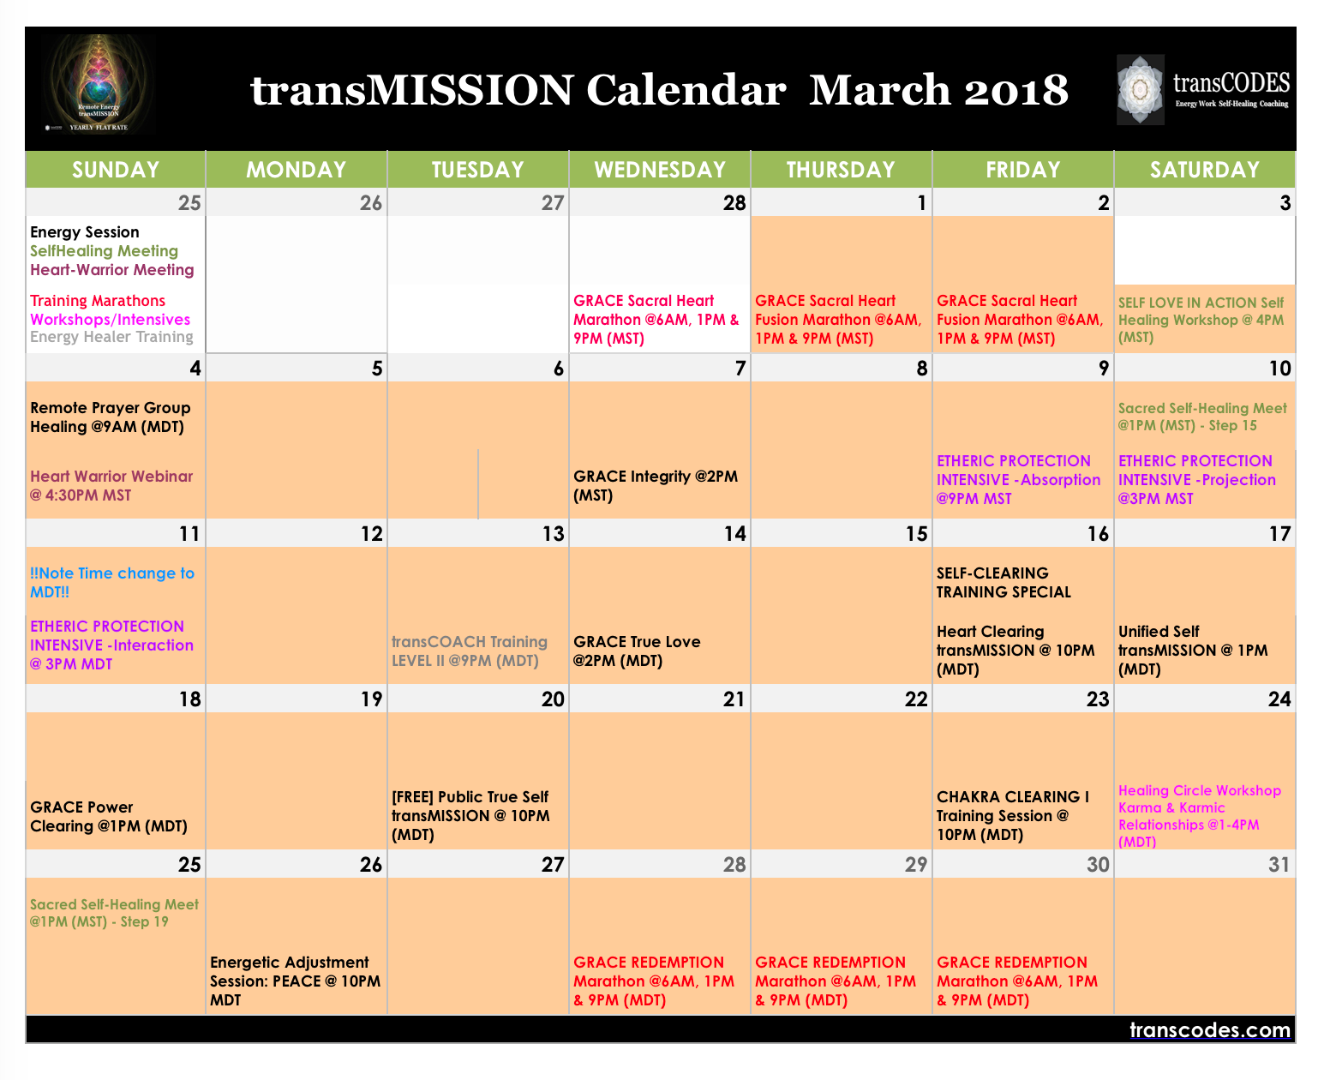 MARCH 2018 transCODES Event Calendar.png